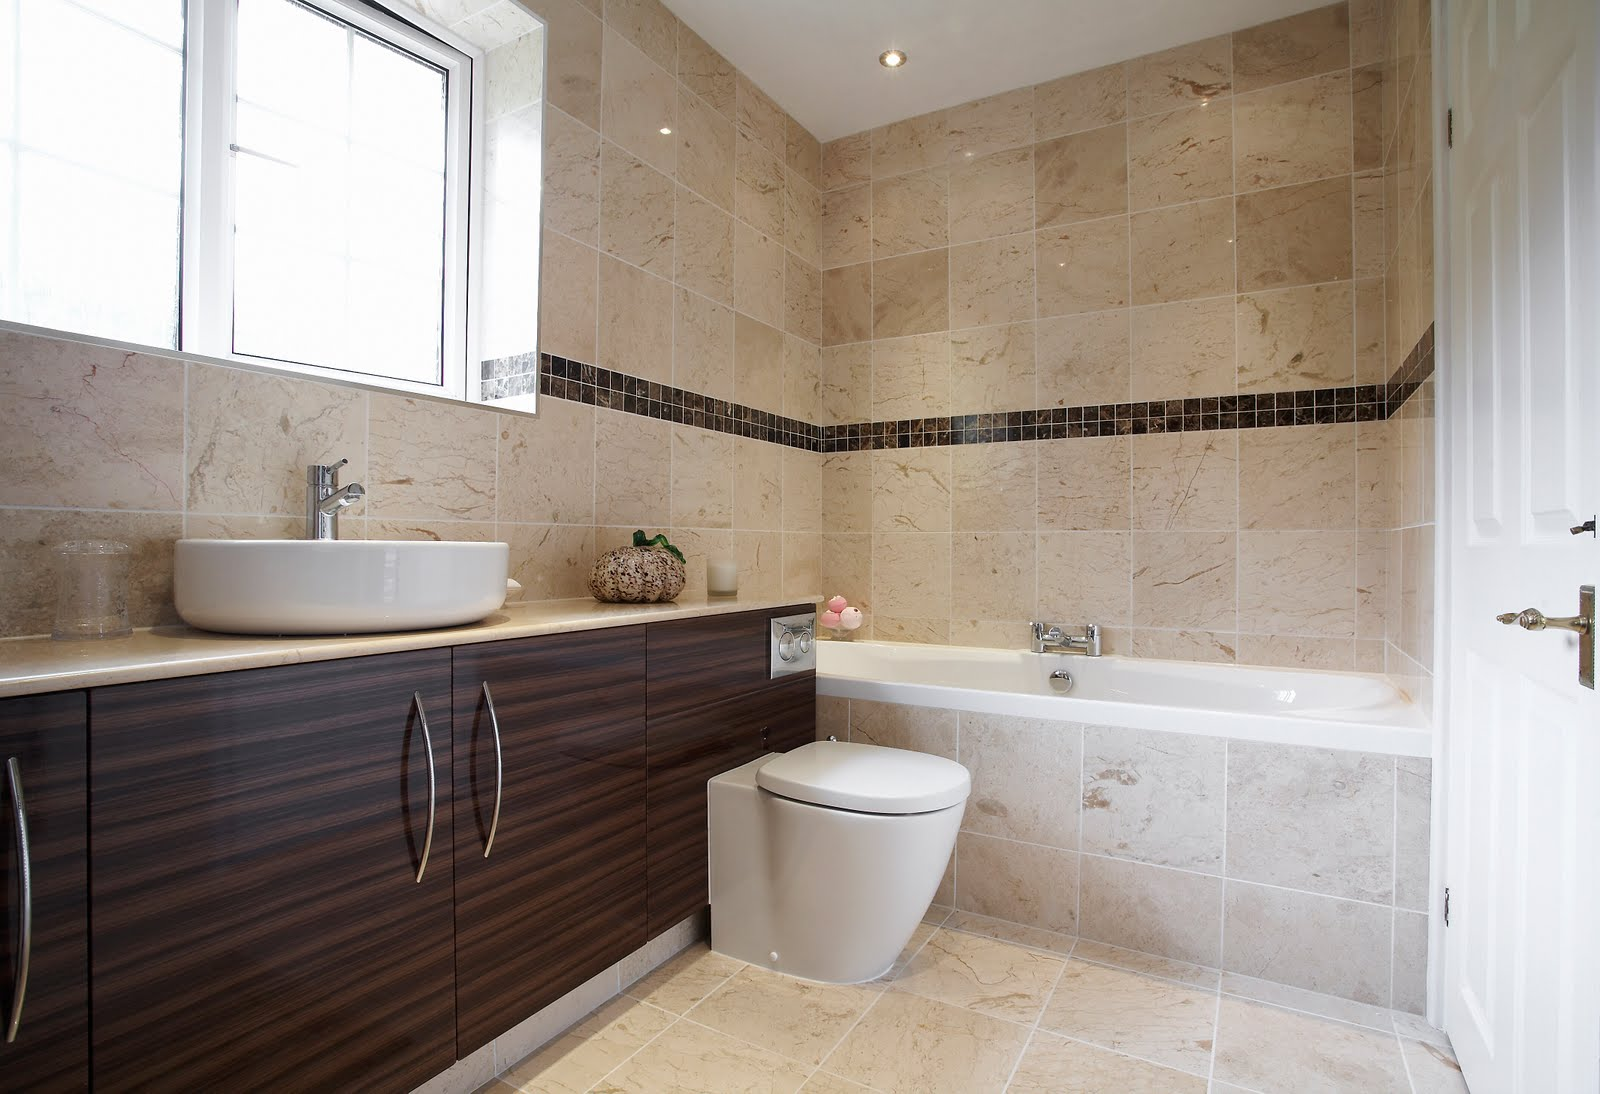 Cymru kitchens ltd cymru kitchens bathrooms for In design bathrooms